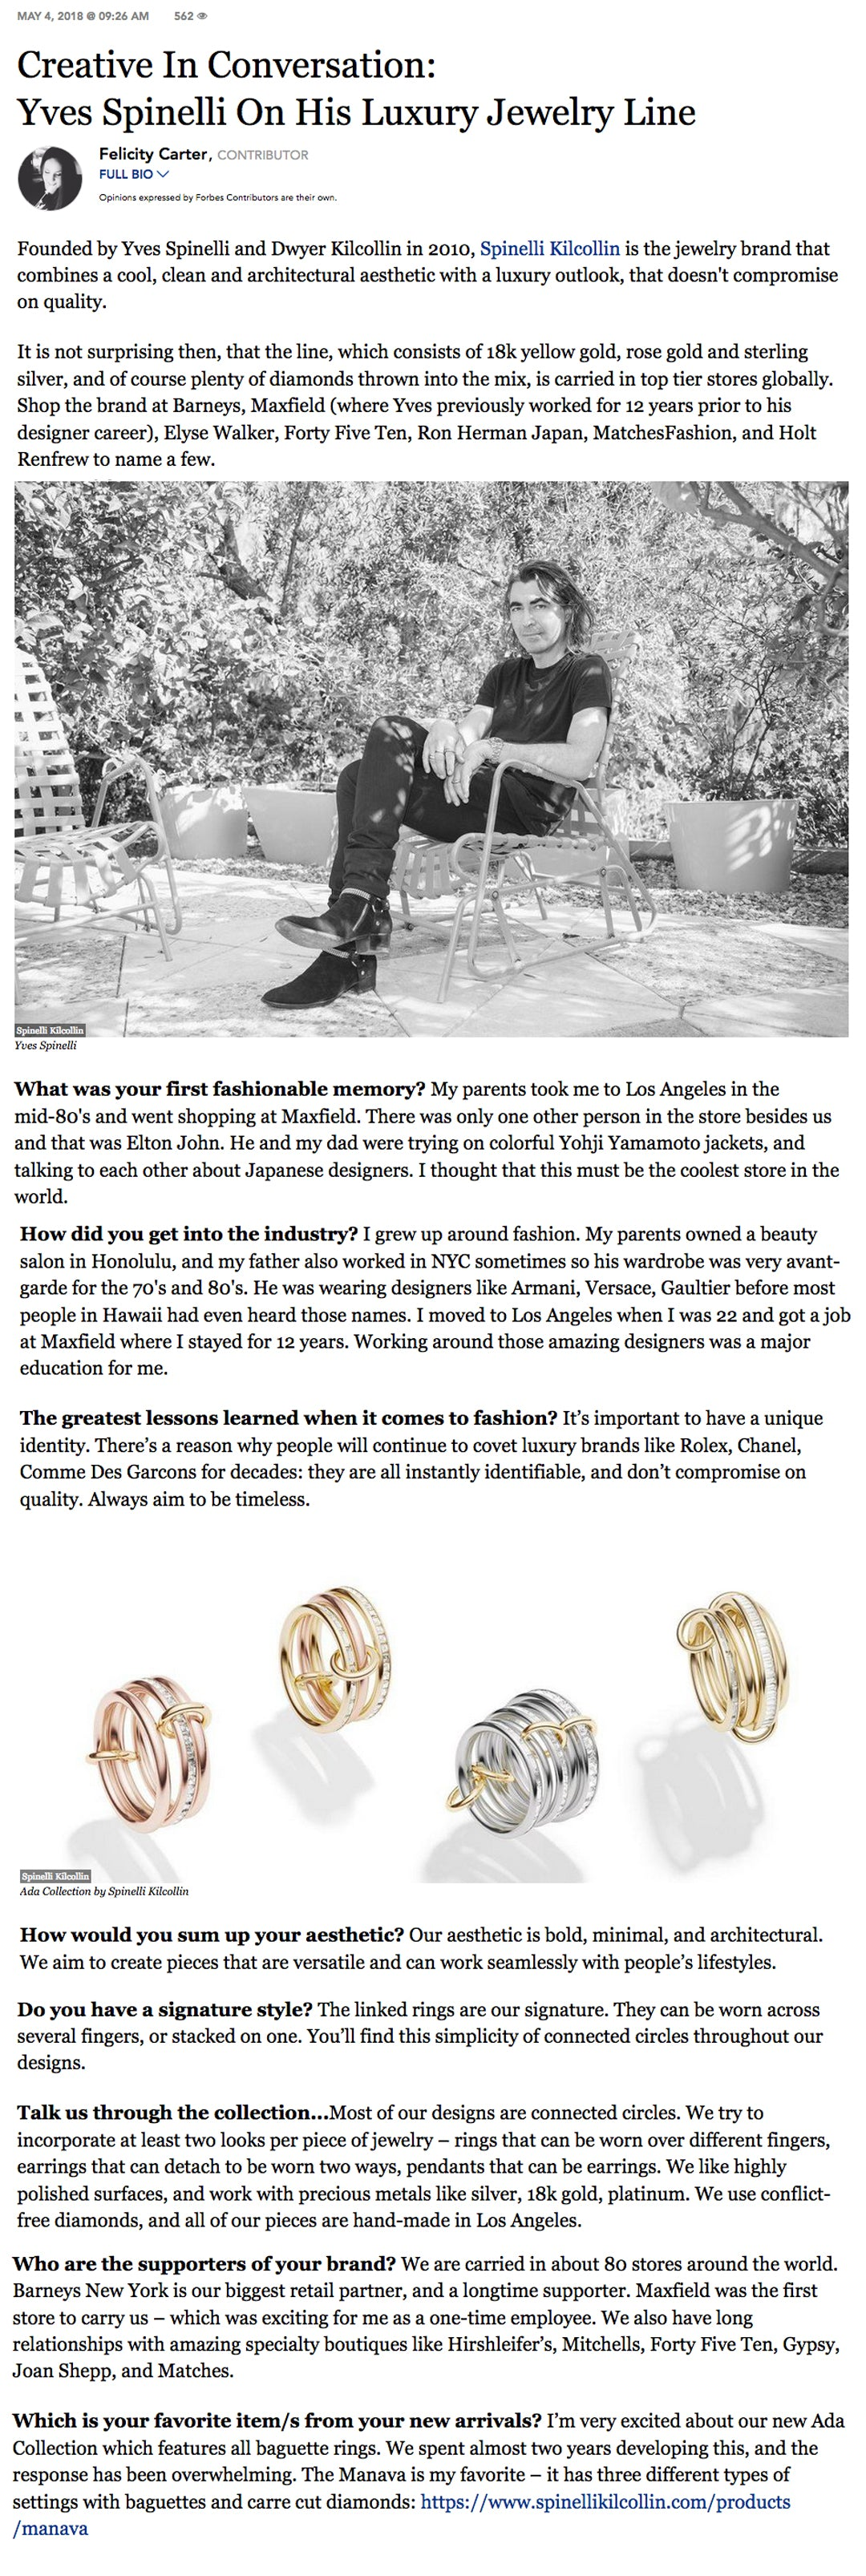 forbes spinelli kilcollin ada collection rene mozi manava lehmus medora augusta linked rings luxury jewelry